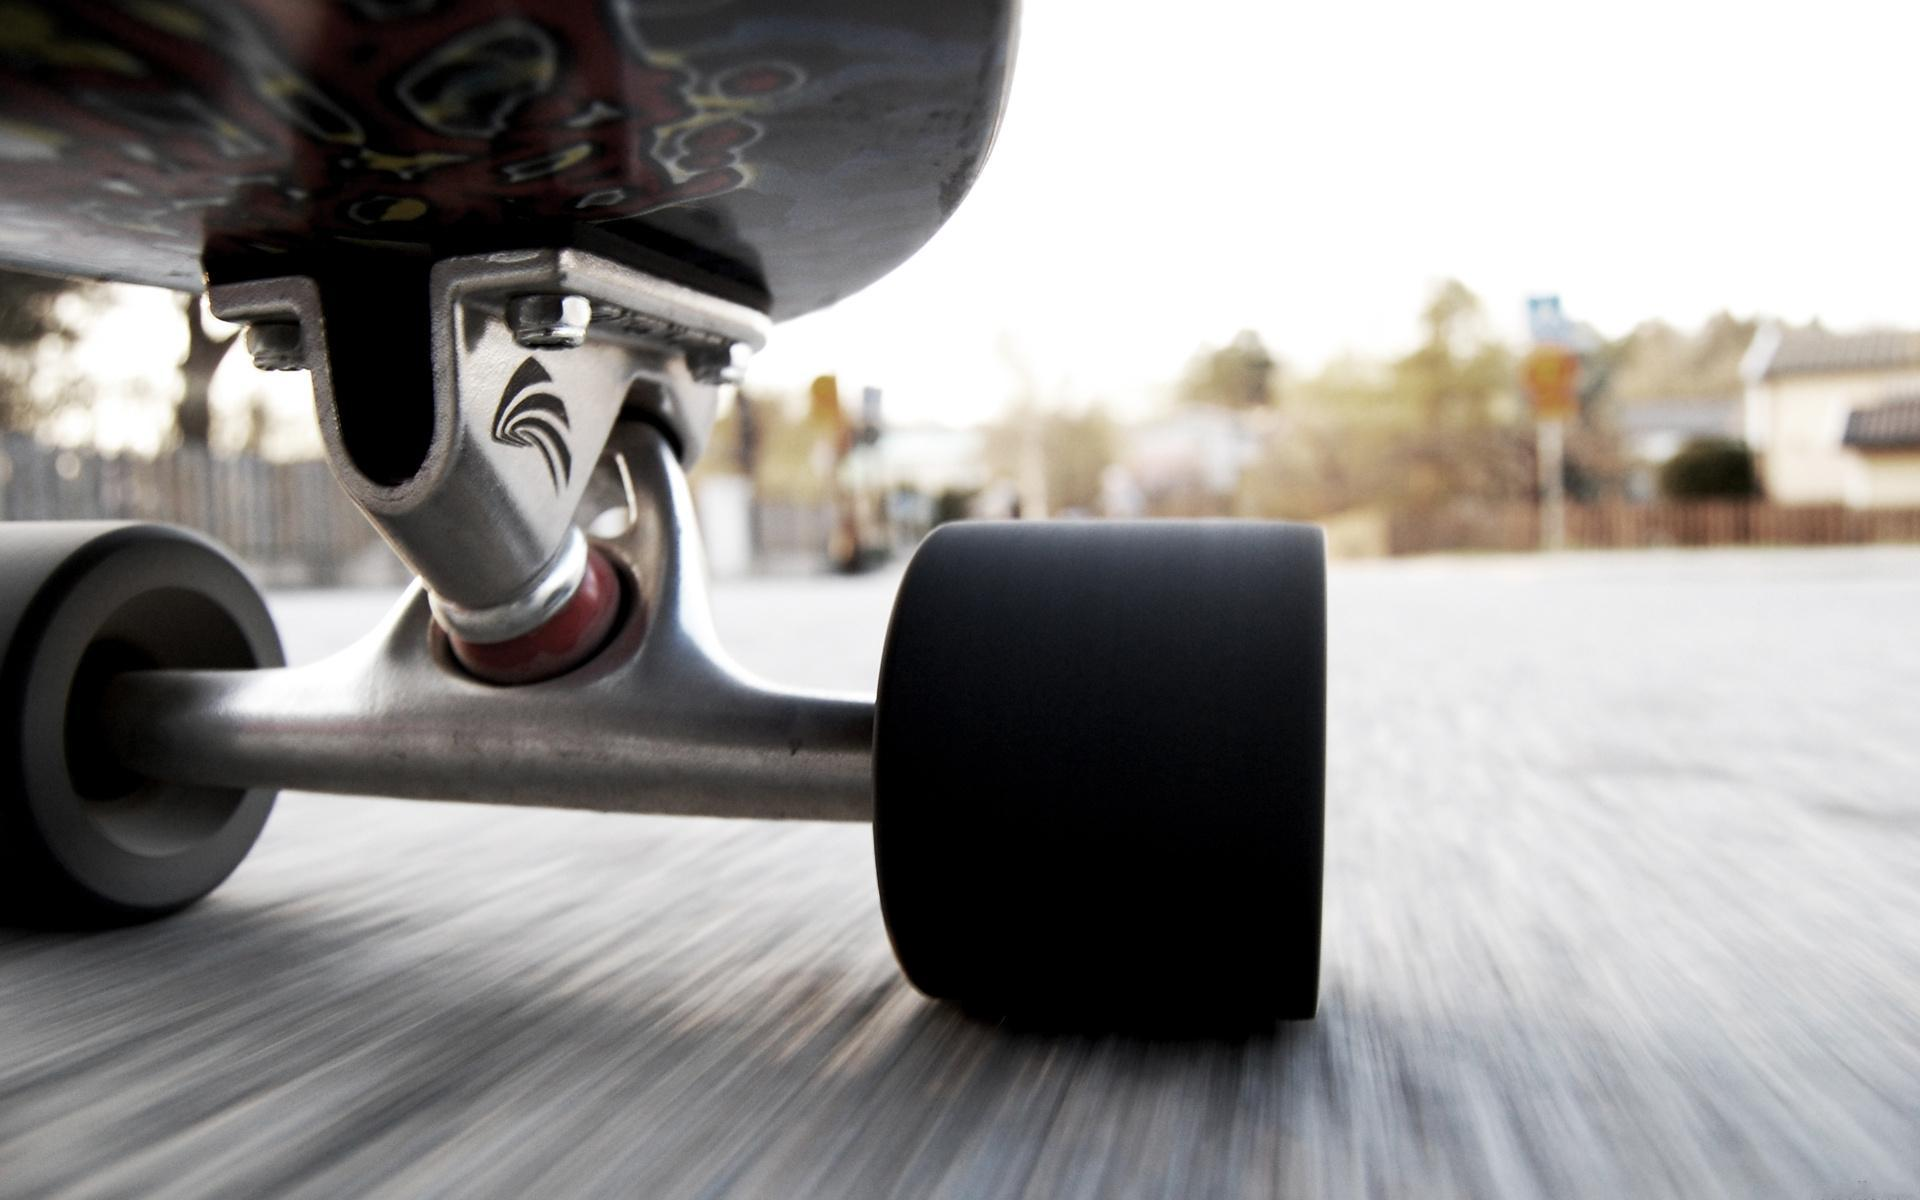 Skate Wallpaper para Android - APK Descargar